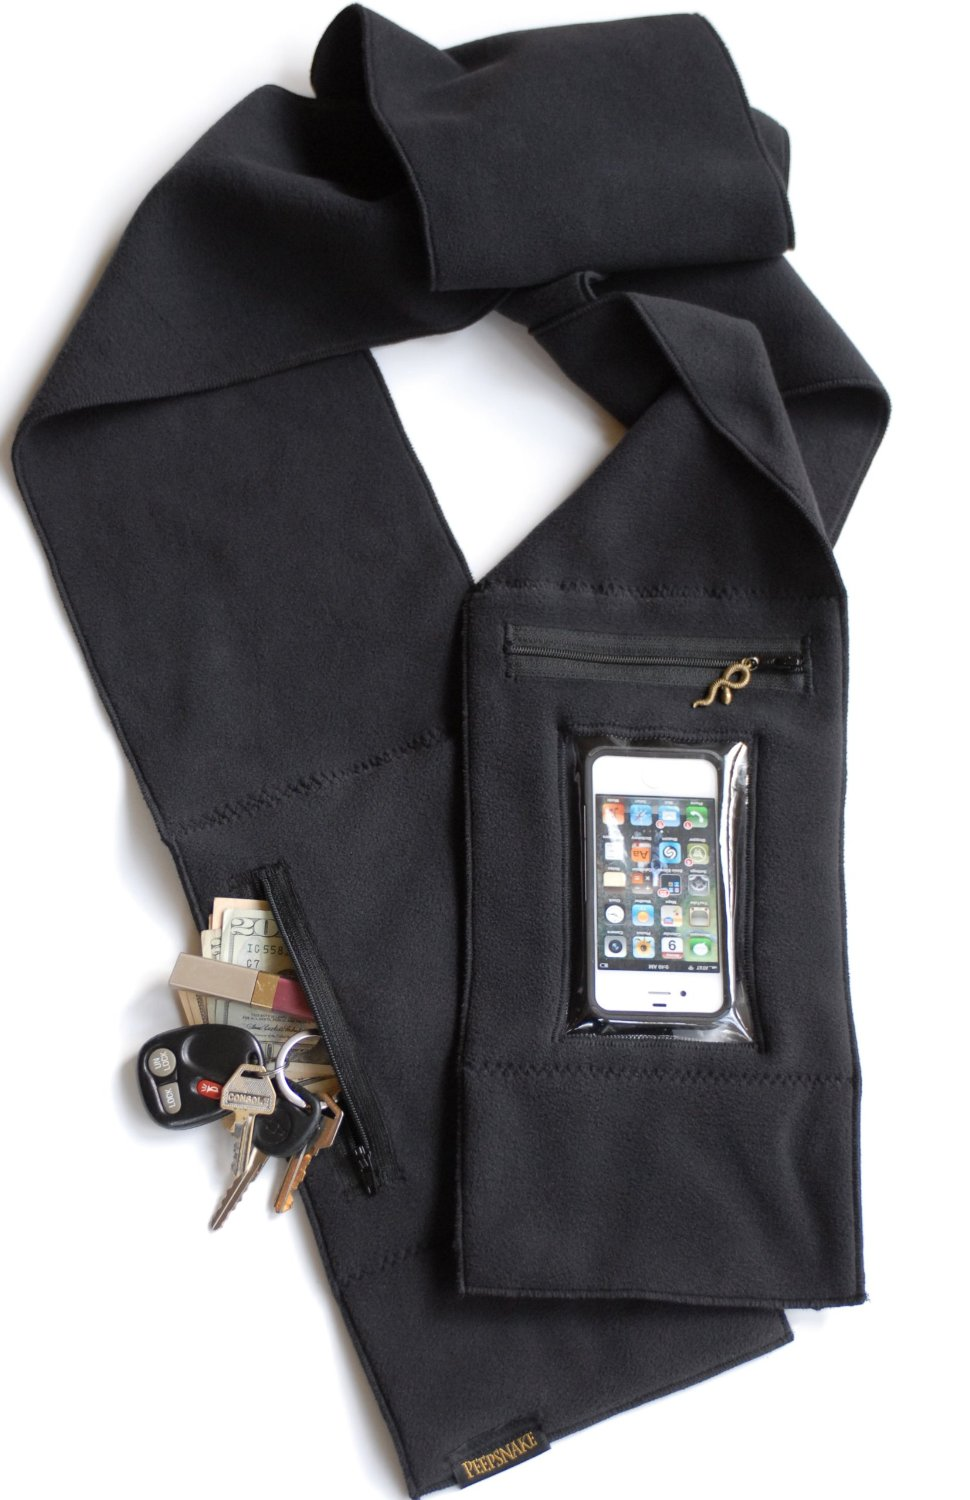 iphone scarf, the source magazine, technology, iphone accessories, fashion, nyfw,